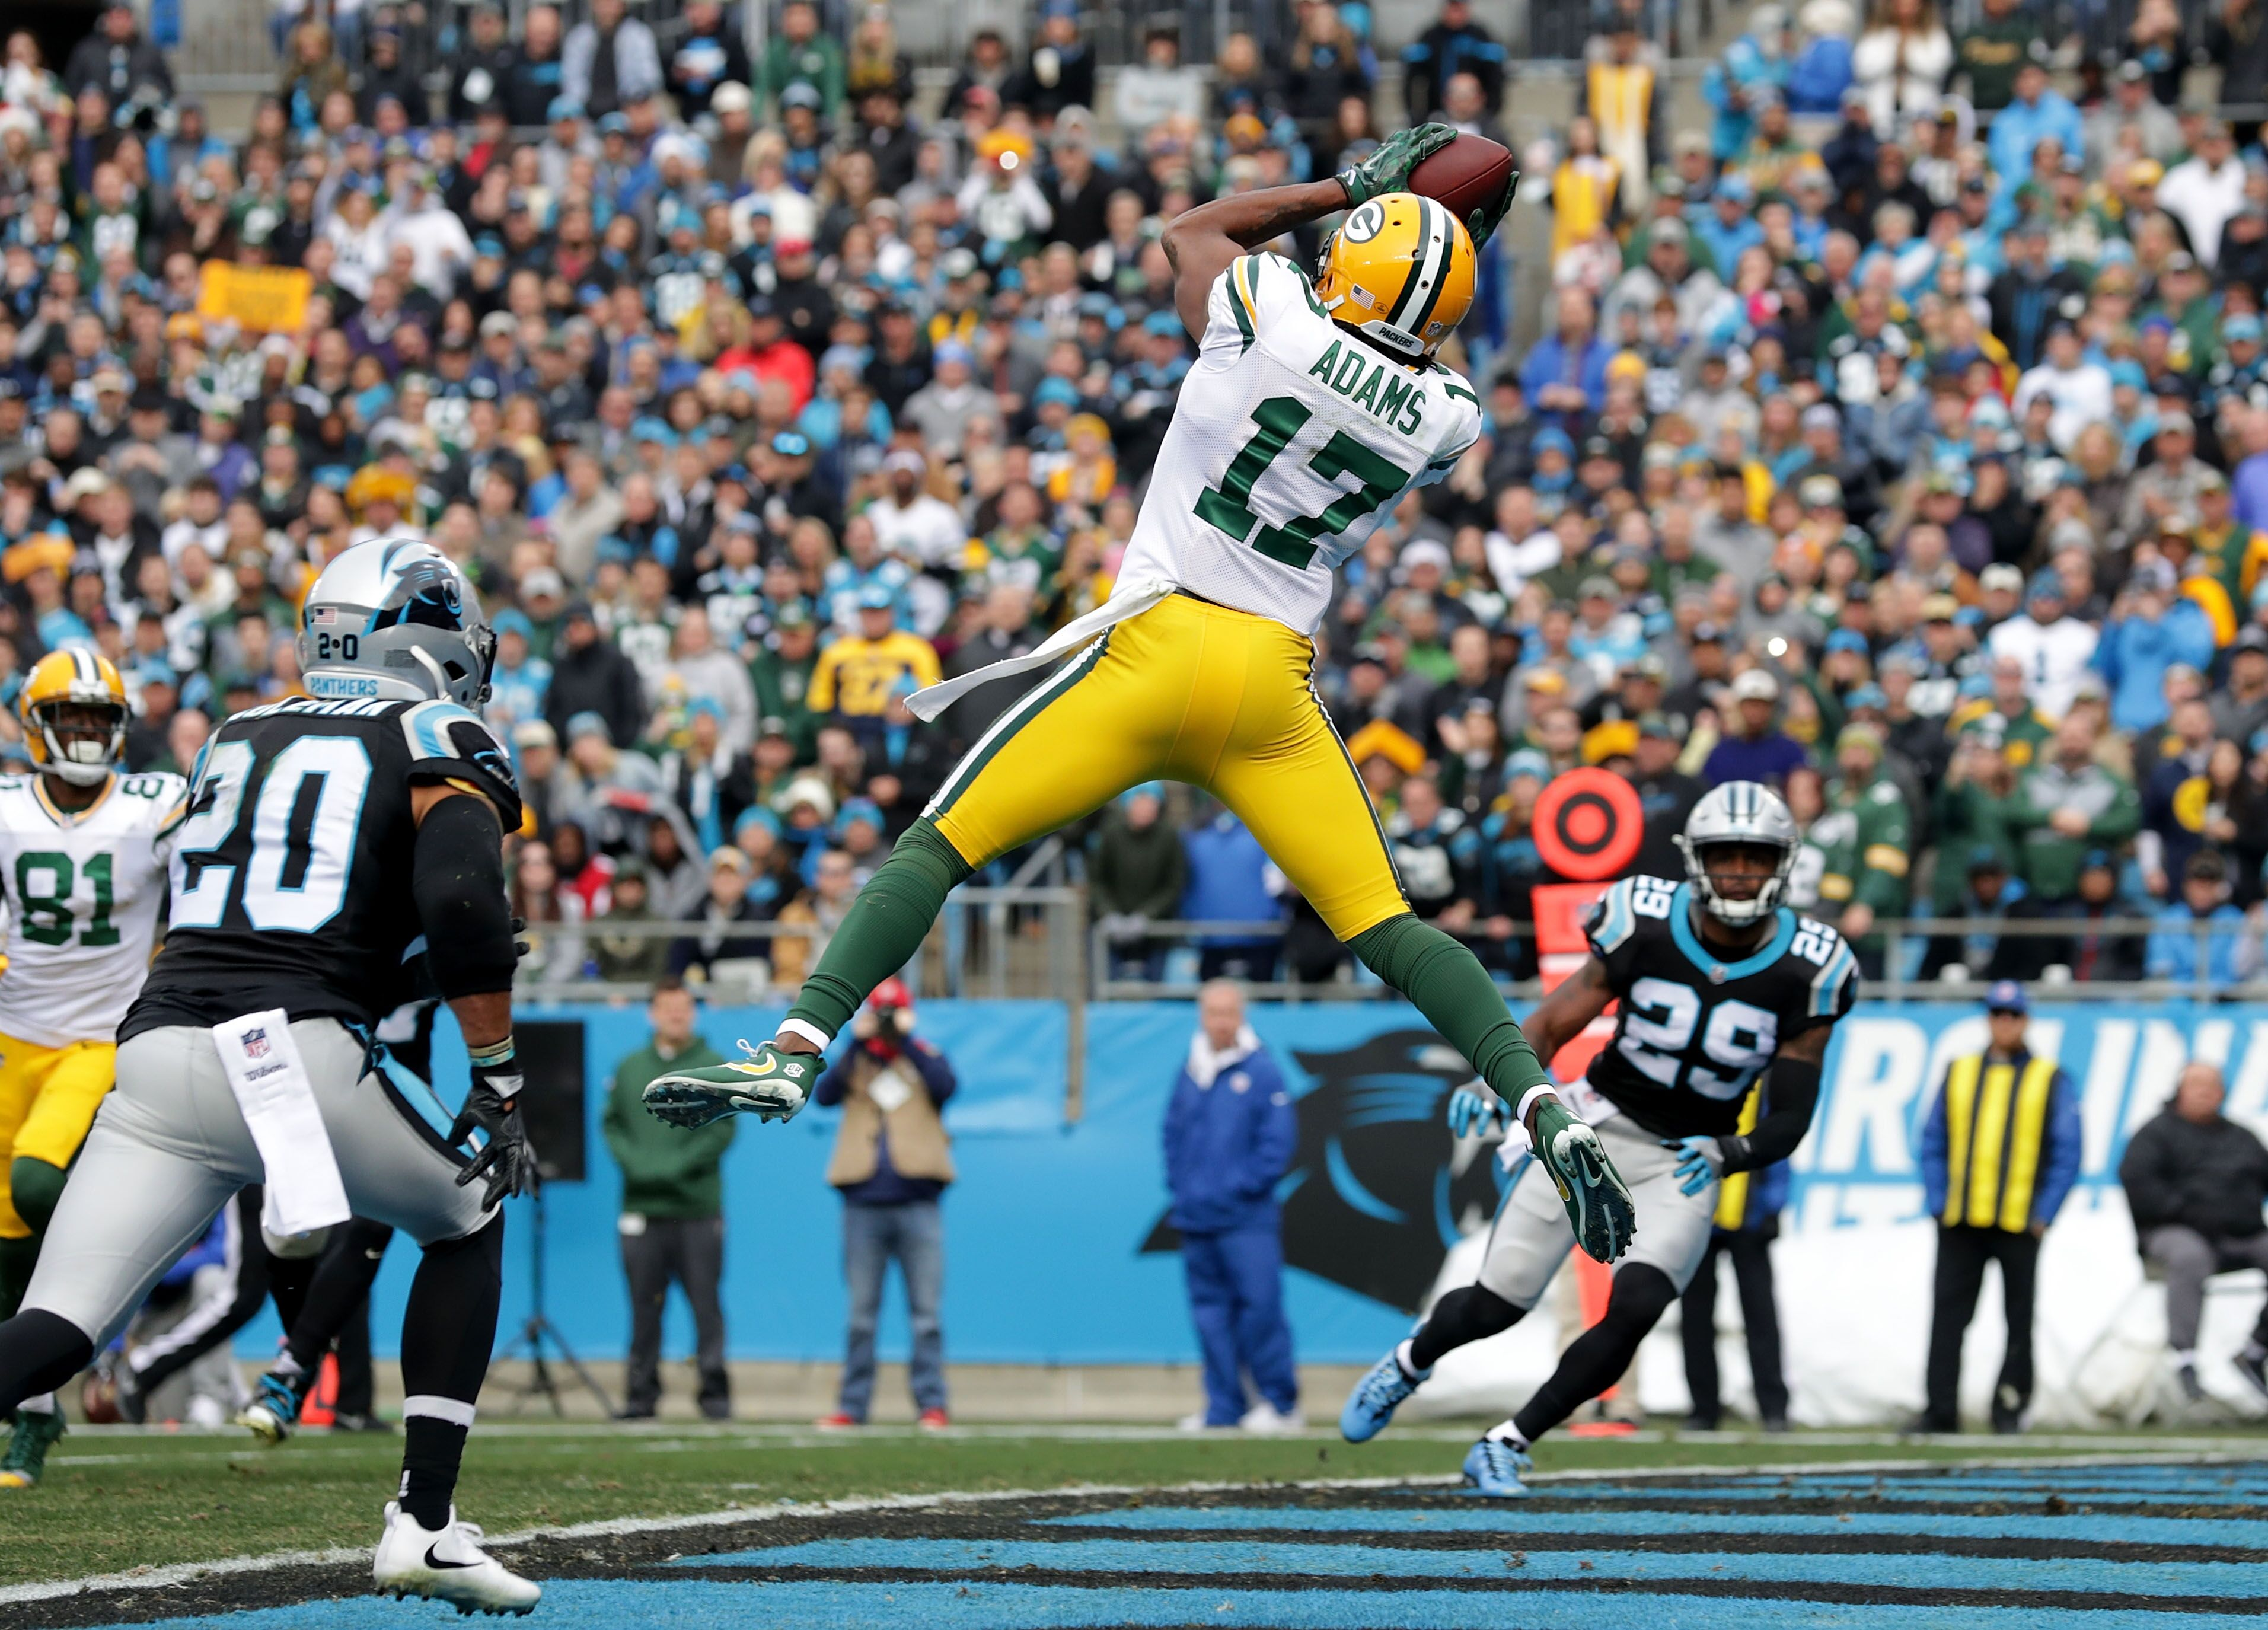 The Panthers Score >> Green Bay Packers: Davante Adams is the undisputed team MVP